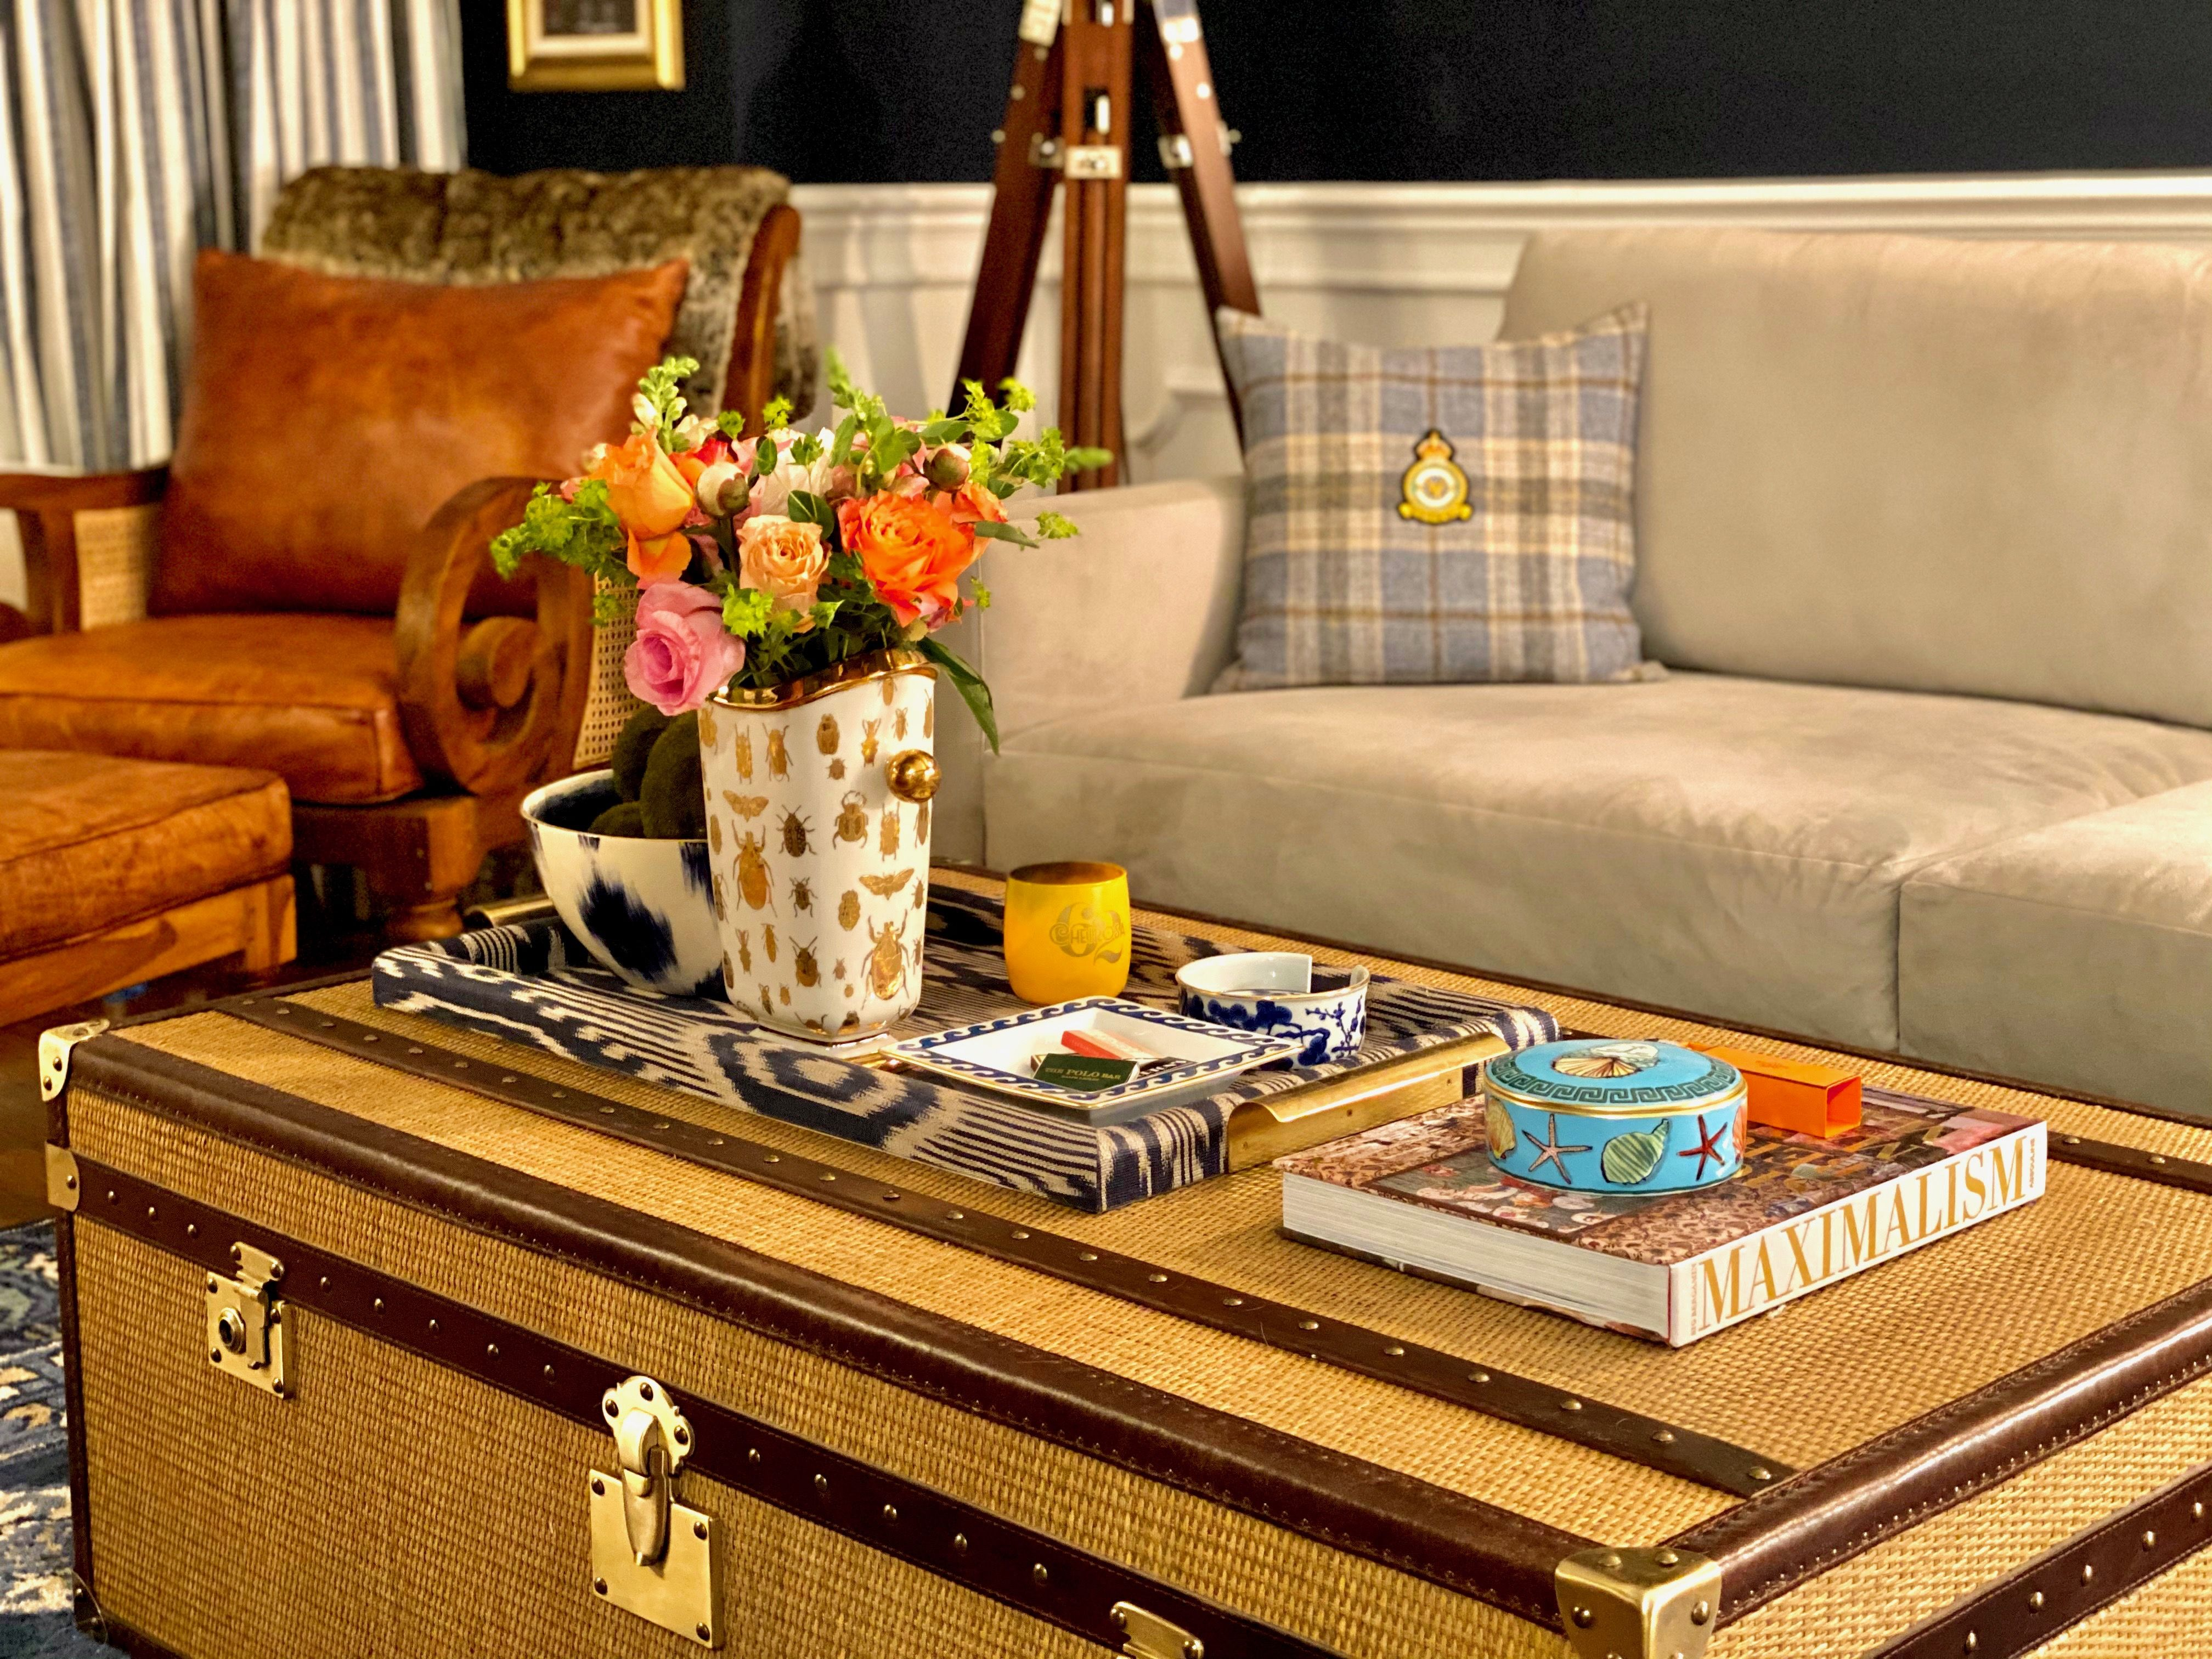 How An Elle Decor Editor Styles Her Coffee Table